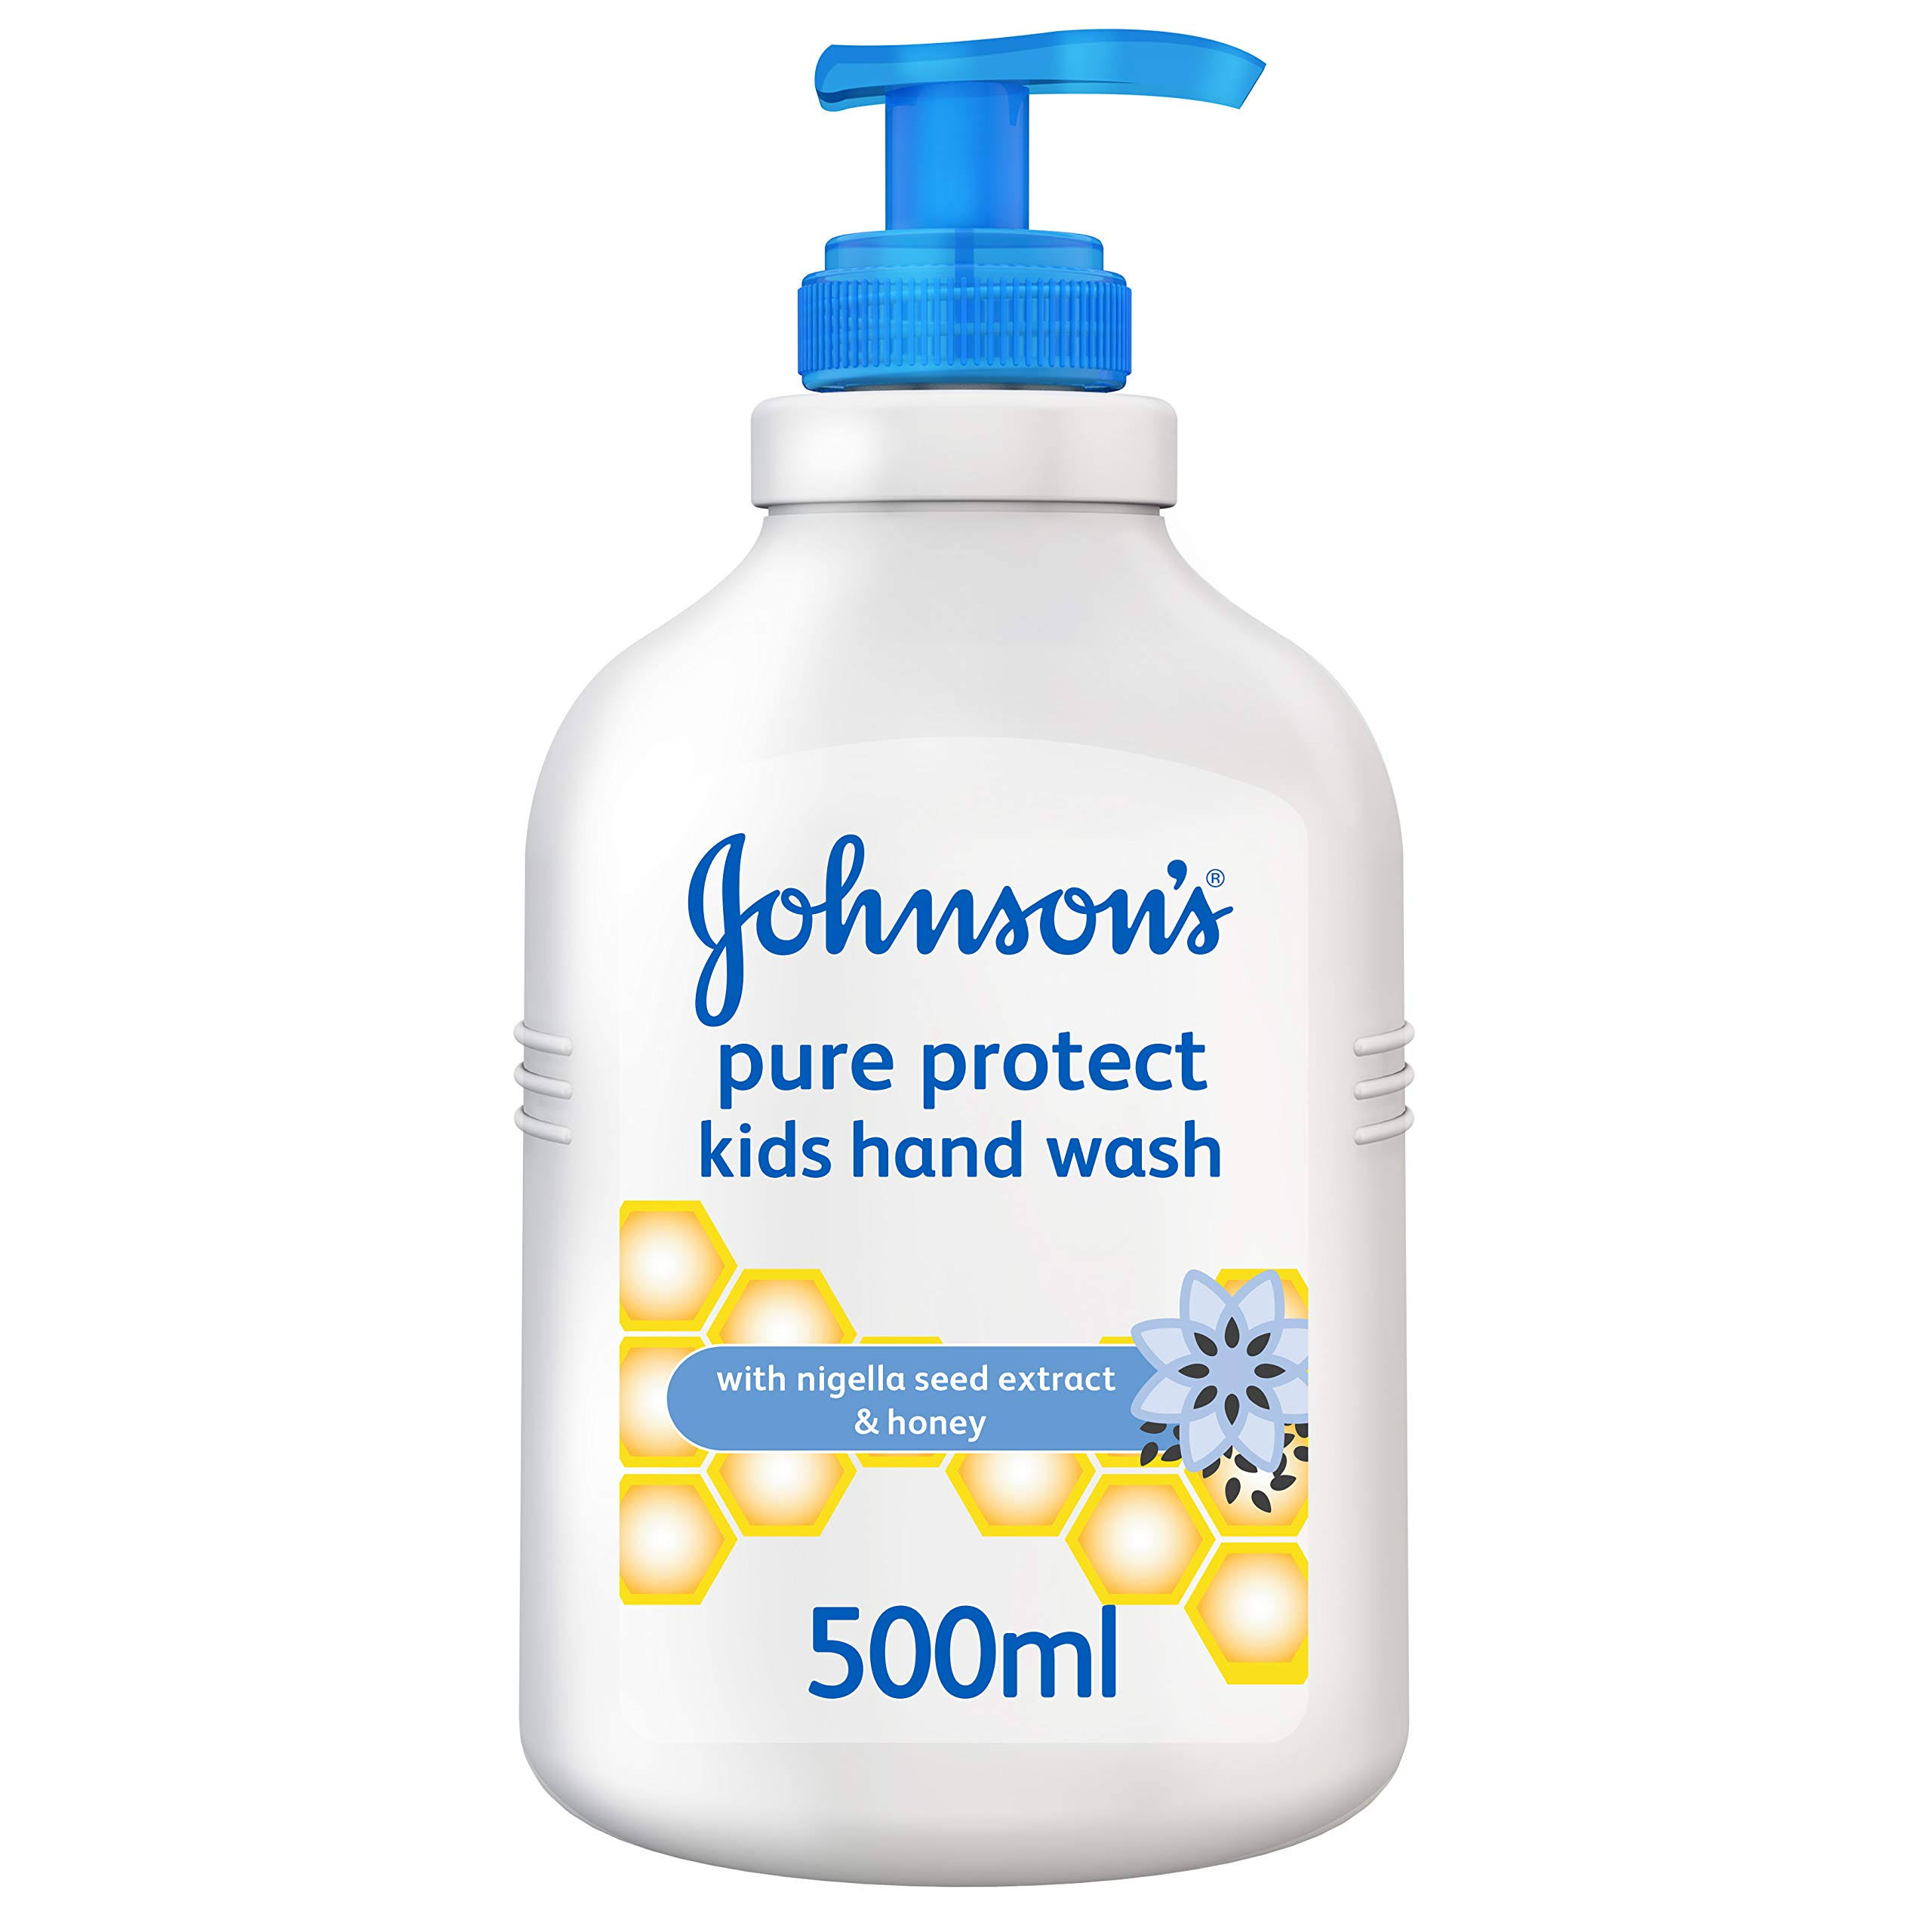 Johnson's Pure Protect Hand Wash - 500ml